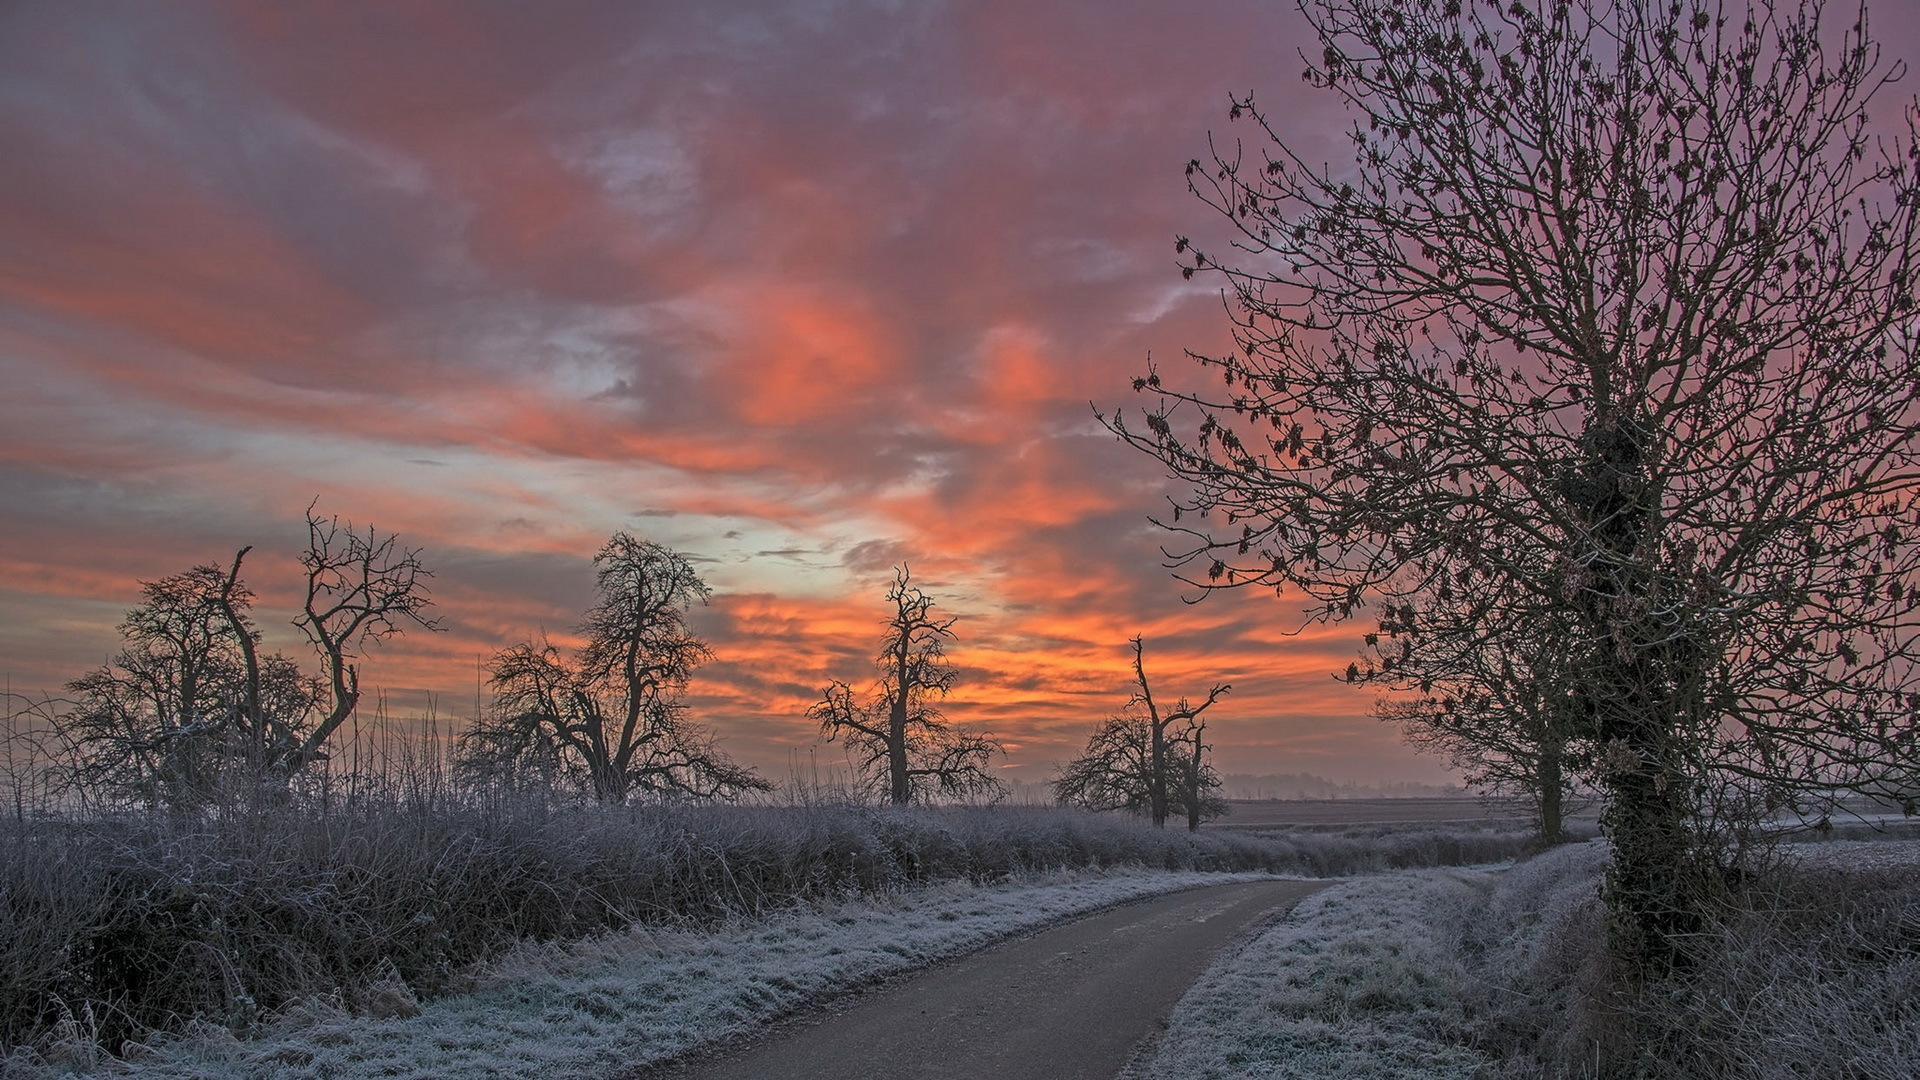 Frosty Road At A Beautiful Sunset Hd Desktop Background HD wallpapers